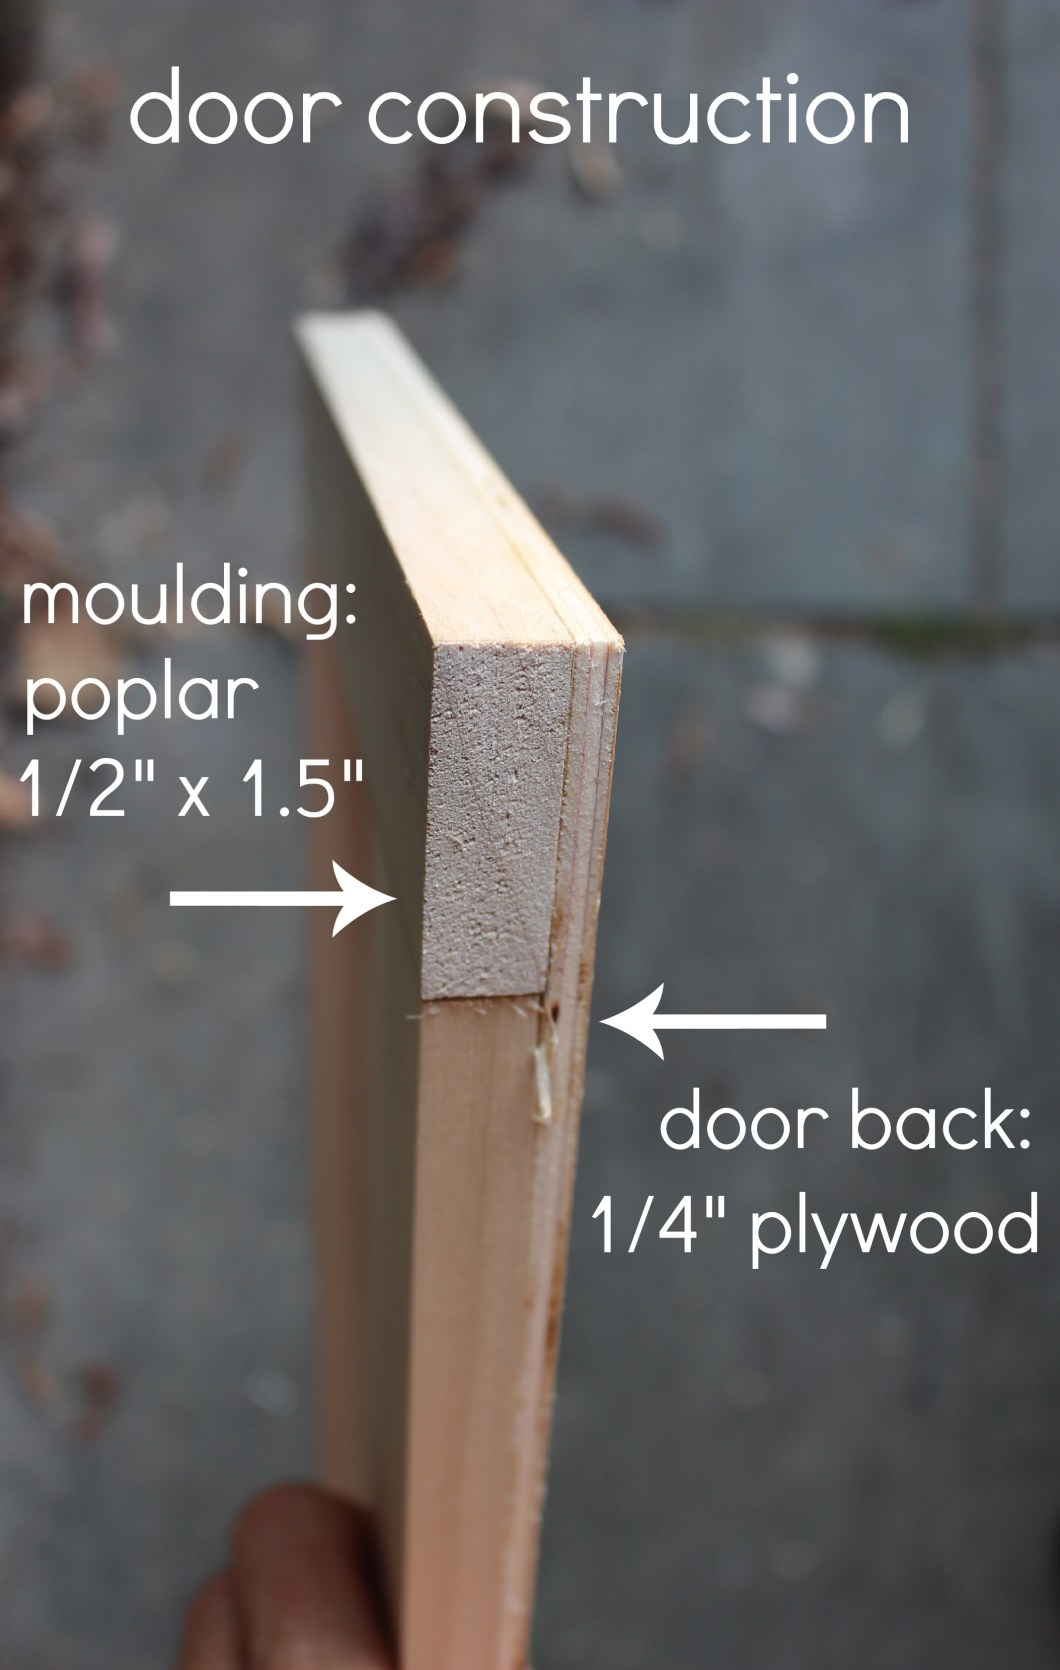 How To Make Easy Cabinet Doors Out Of Plywood Functionalities